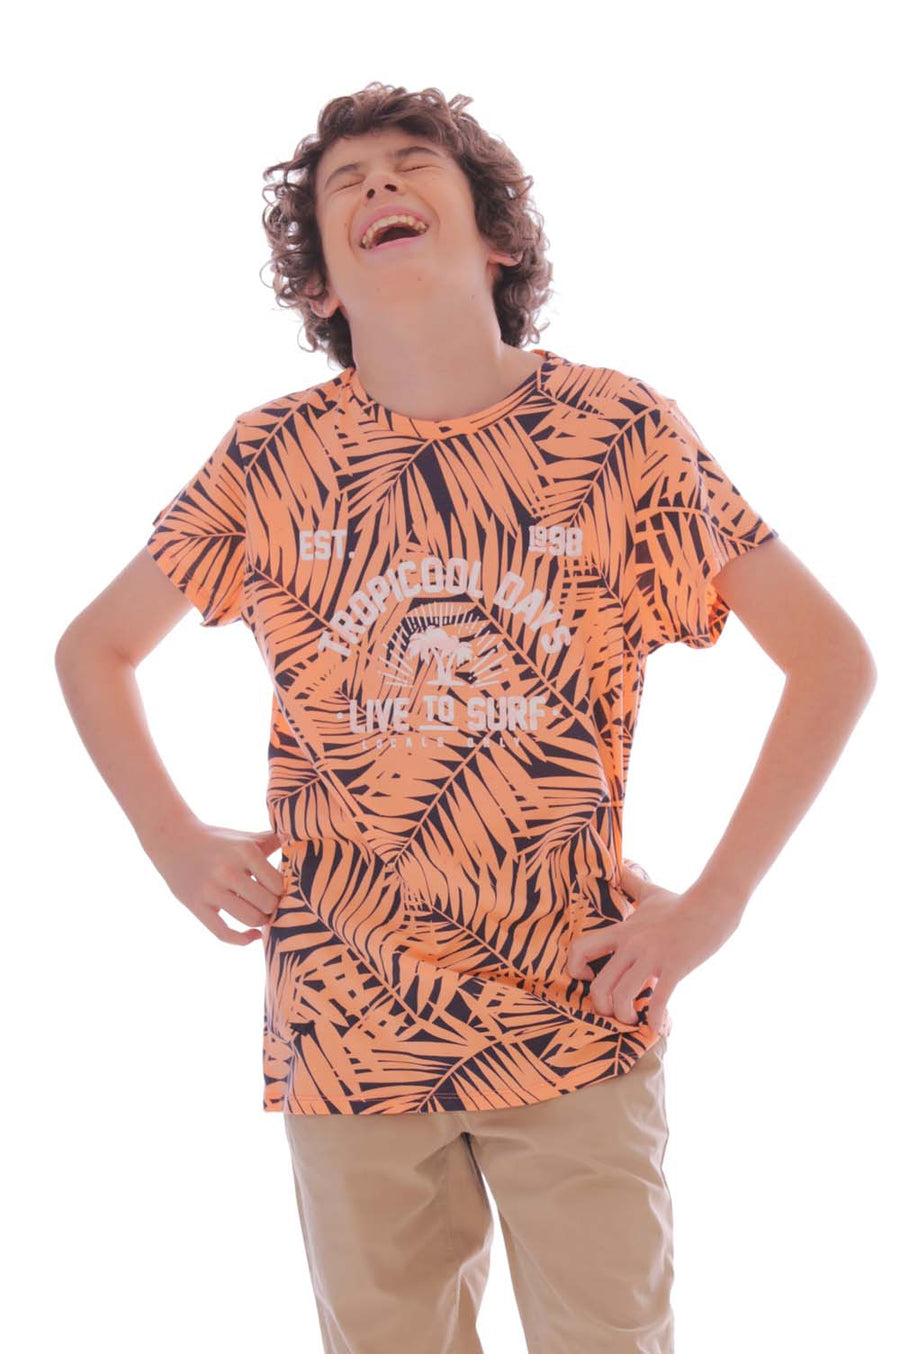 CAMISETA BLANCA TROPICAL ESTAMPADA PARA JUNIOR MASCULINO 100218-00